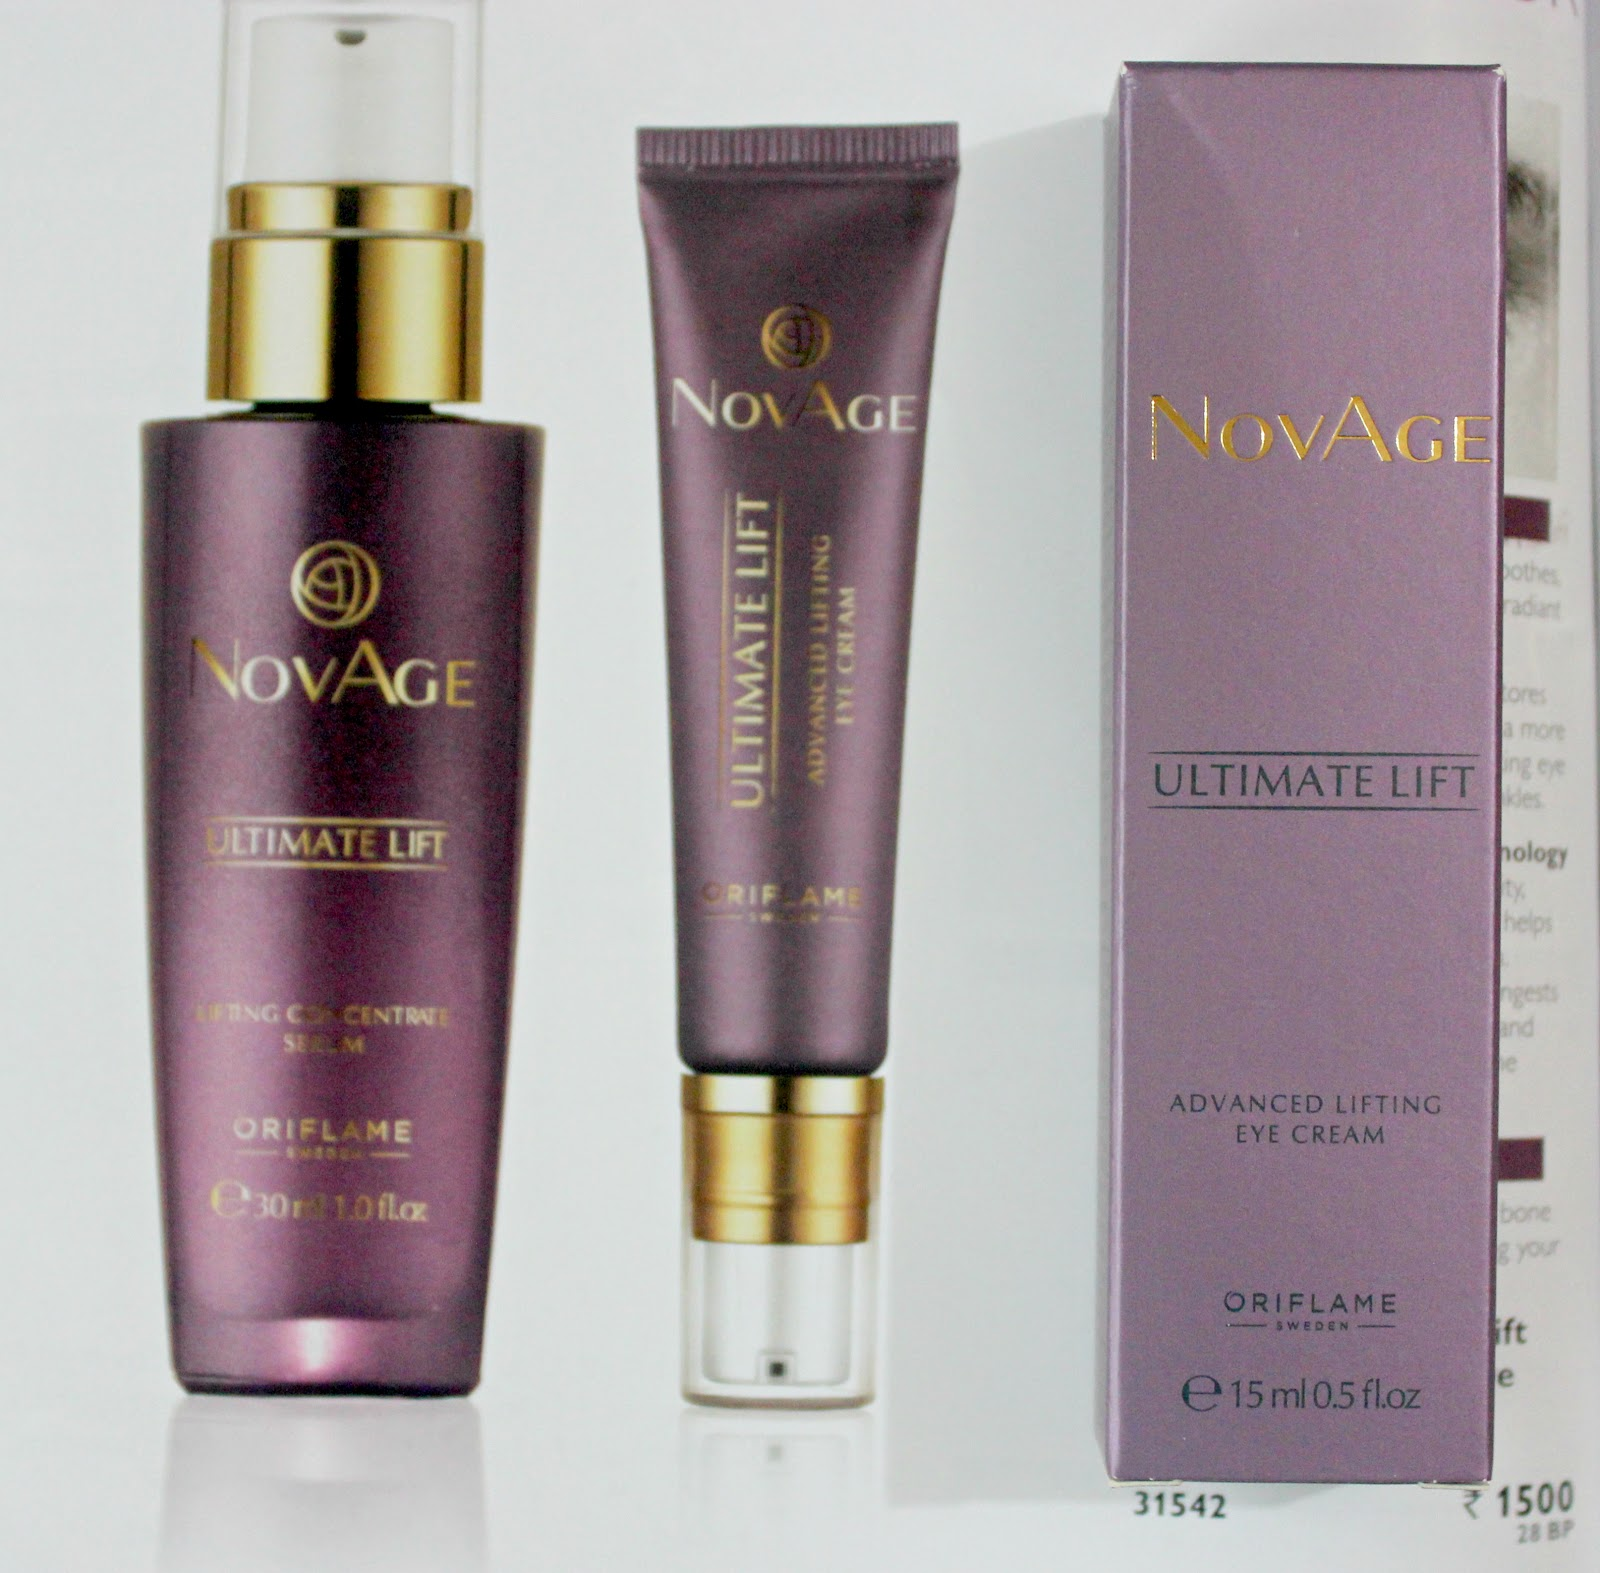 Oriflame novage ultimate lift advanced lifting eye cream quick oriflame novage ultimate lift advanced lifting eye cream quick review stopboris Image collections